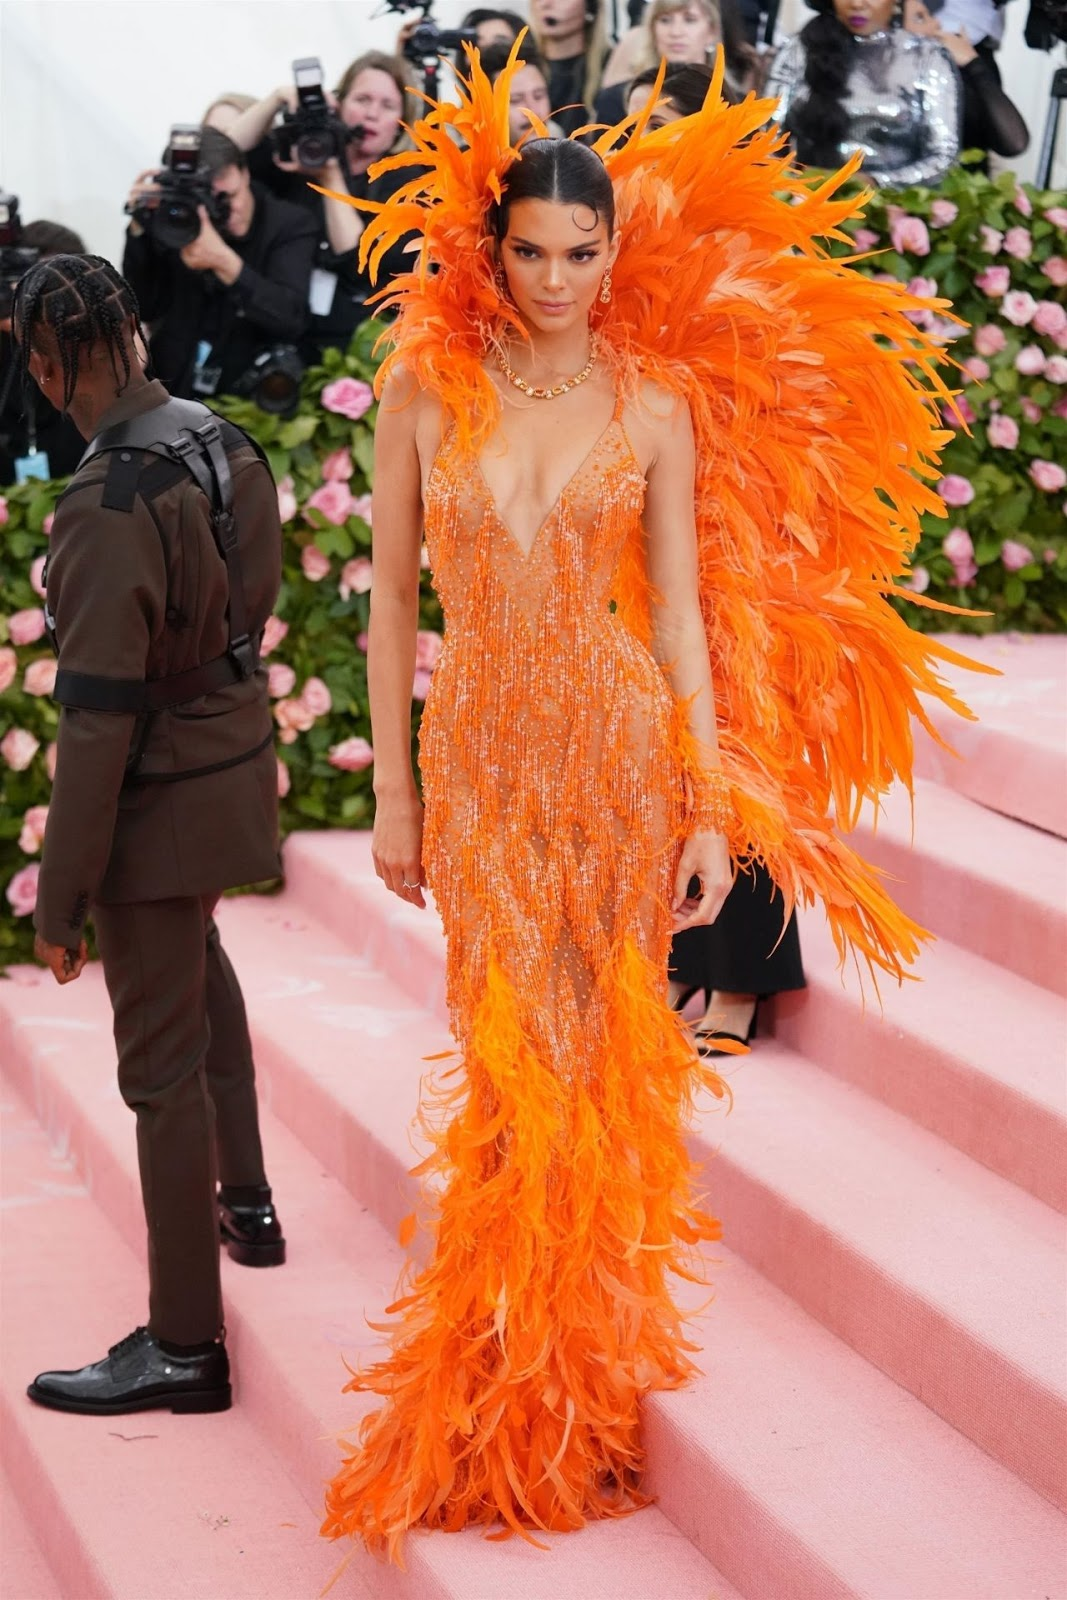 Kendall stunned in a Cher-inspired bright orange feathered naked dress